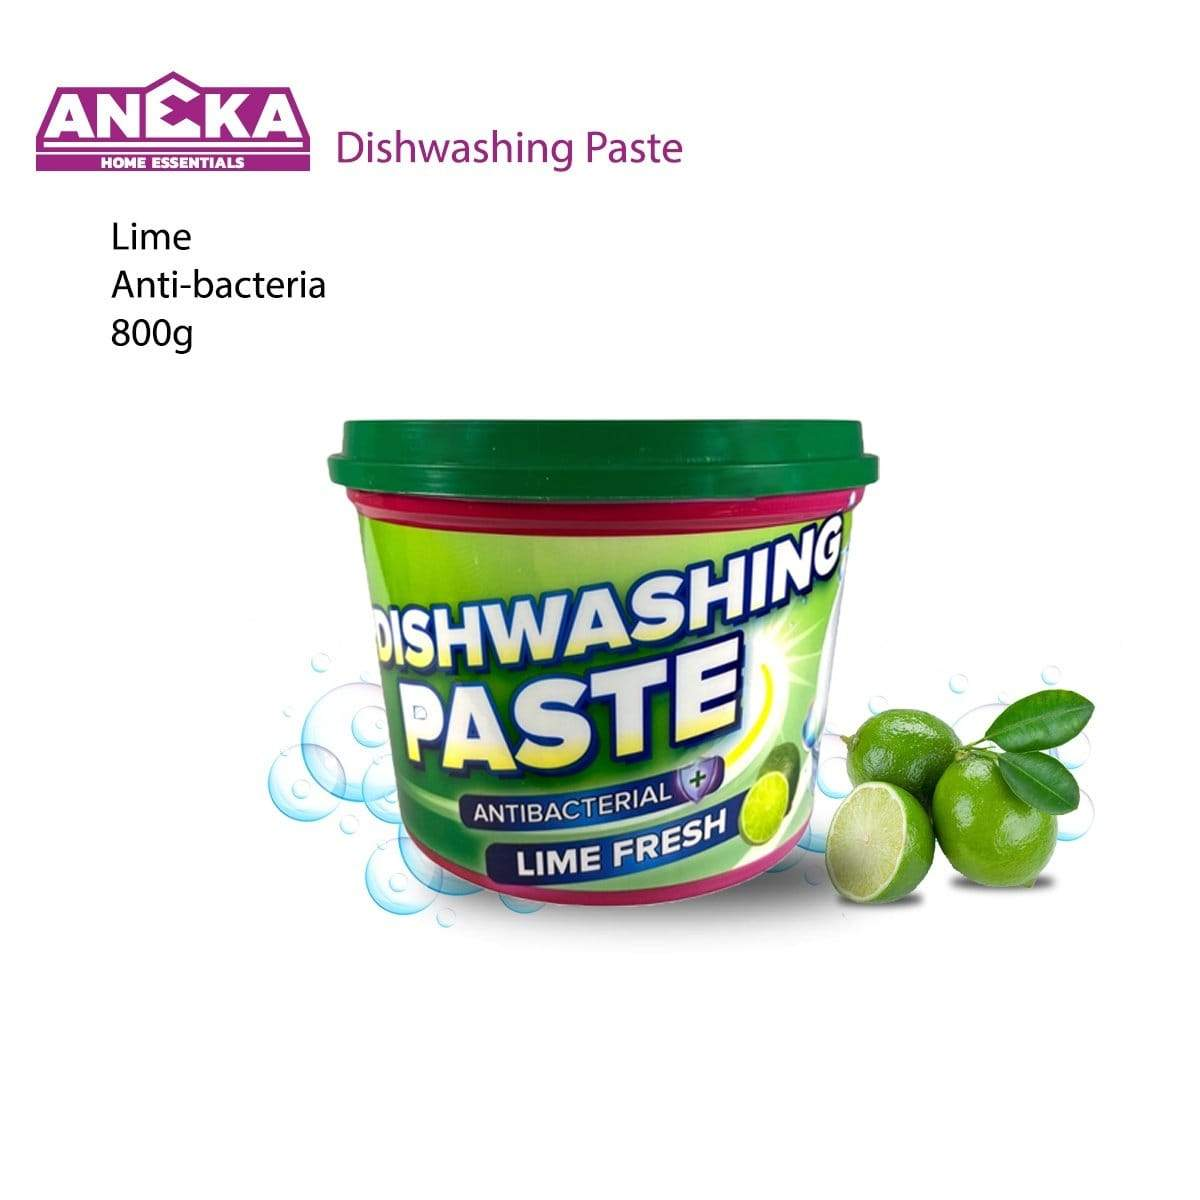 Antibacterial Home Dishwashing Paste 800g Lime